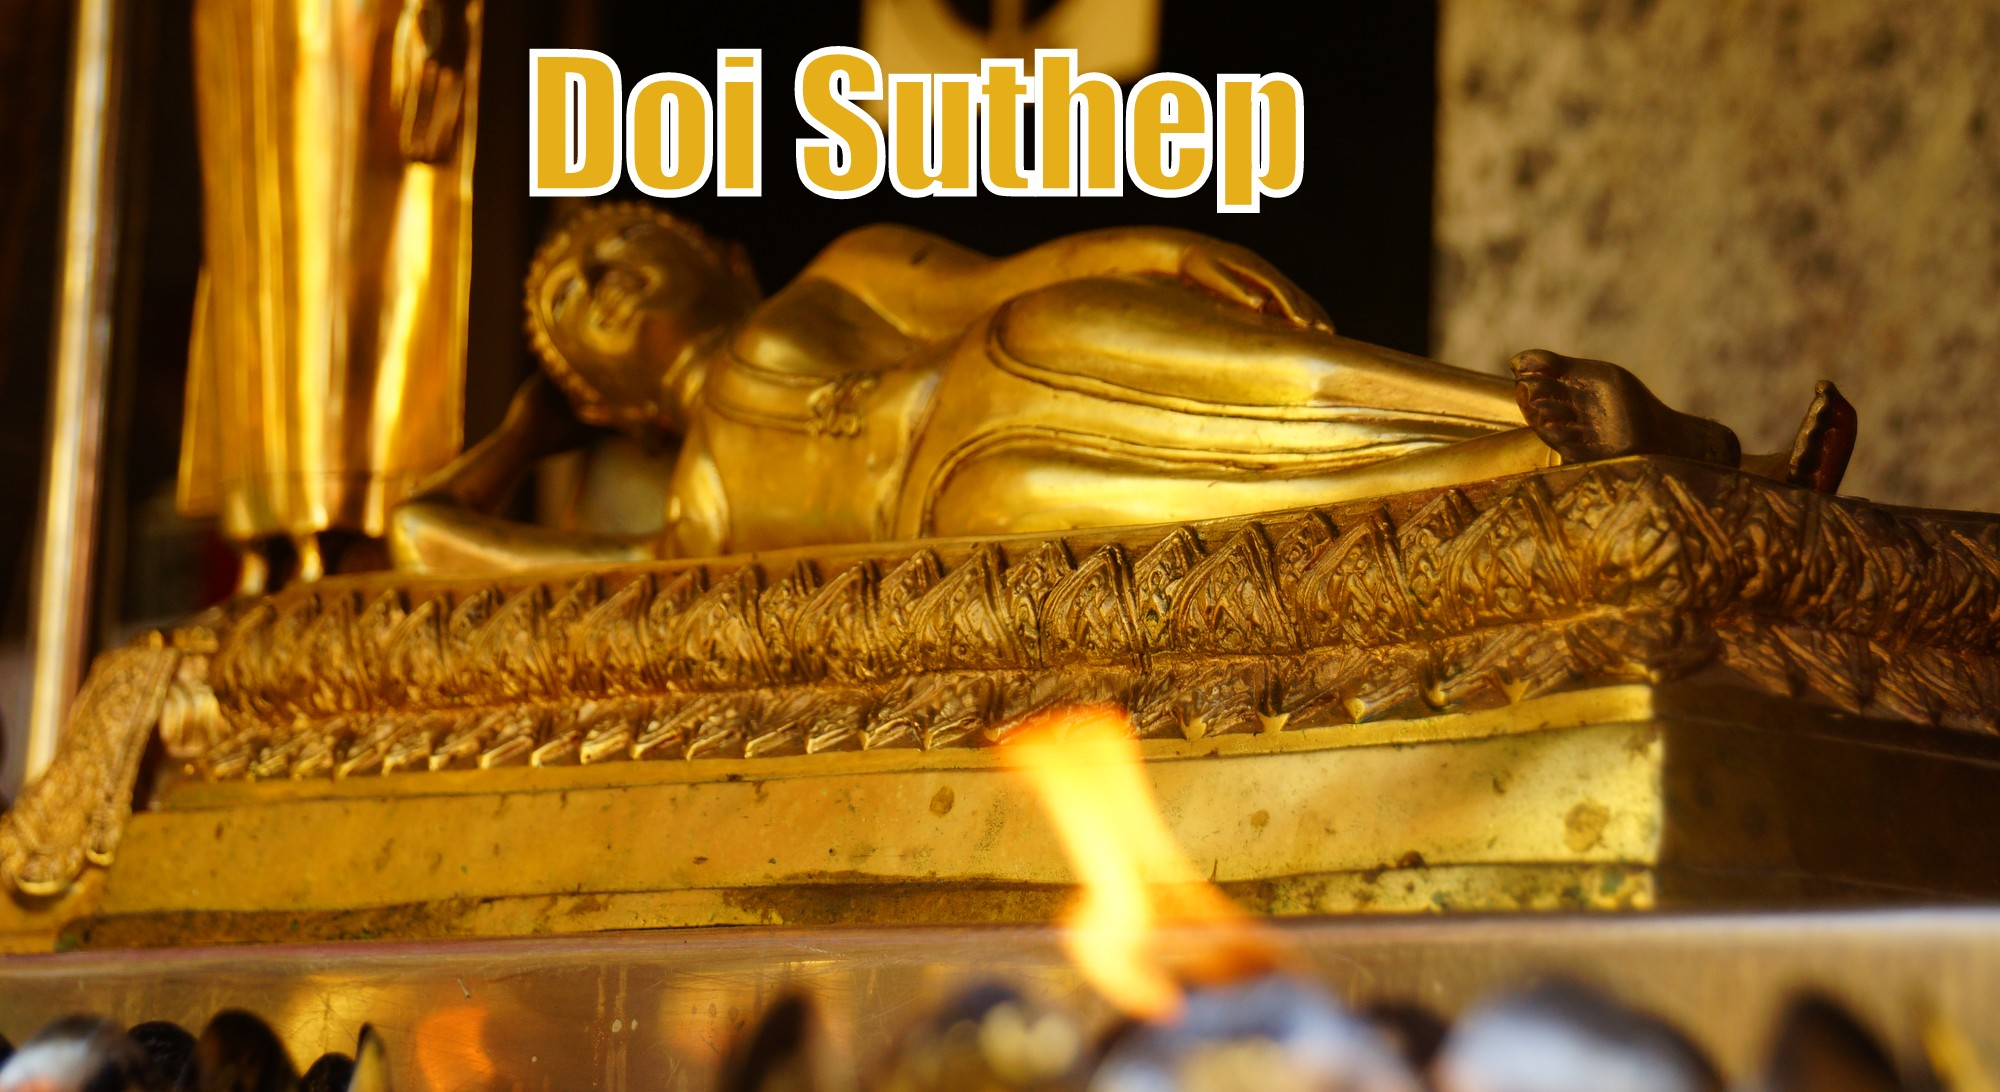 Visiting Wat Phra That Doi Suthep Temple in Chiang Mai, Thailand (วัดพระธาตุดอยสุเทพ)